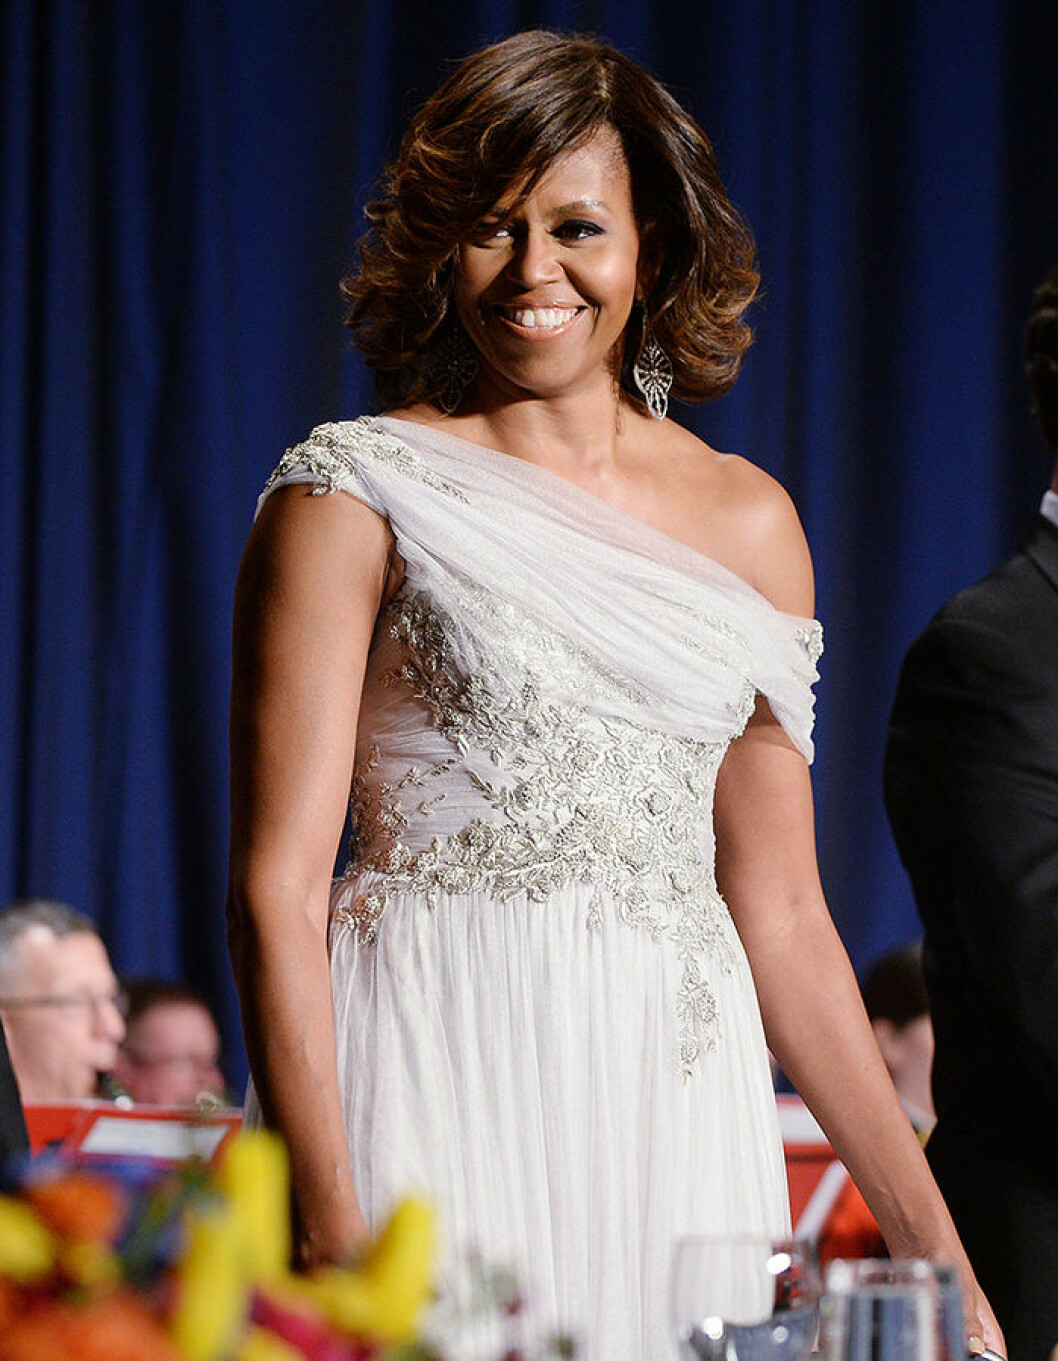 First Lady Michelle Obama attends the annual White House Correspondent's Association Gala at the Washington Hilton Hotel, May 3, 2014 in Washington, DC. Photo Credit: Olivier Douliery/CNP/AdMedia/insight media